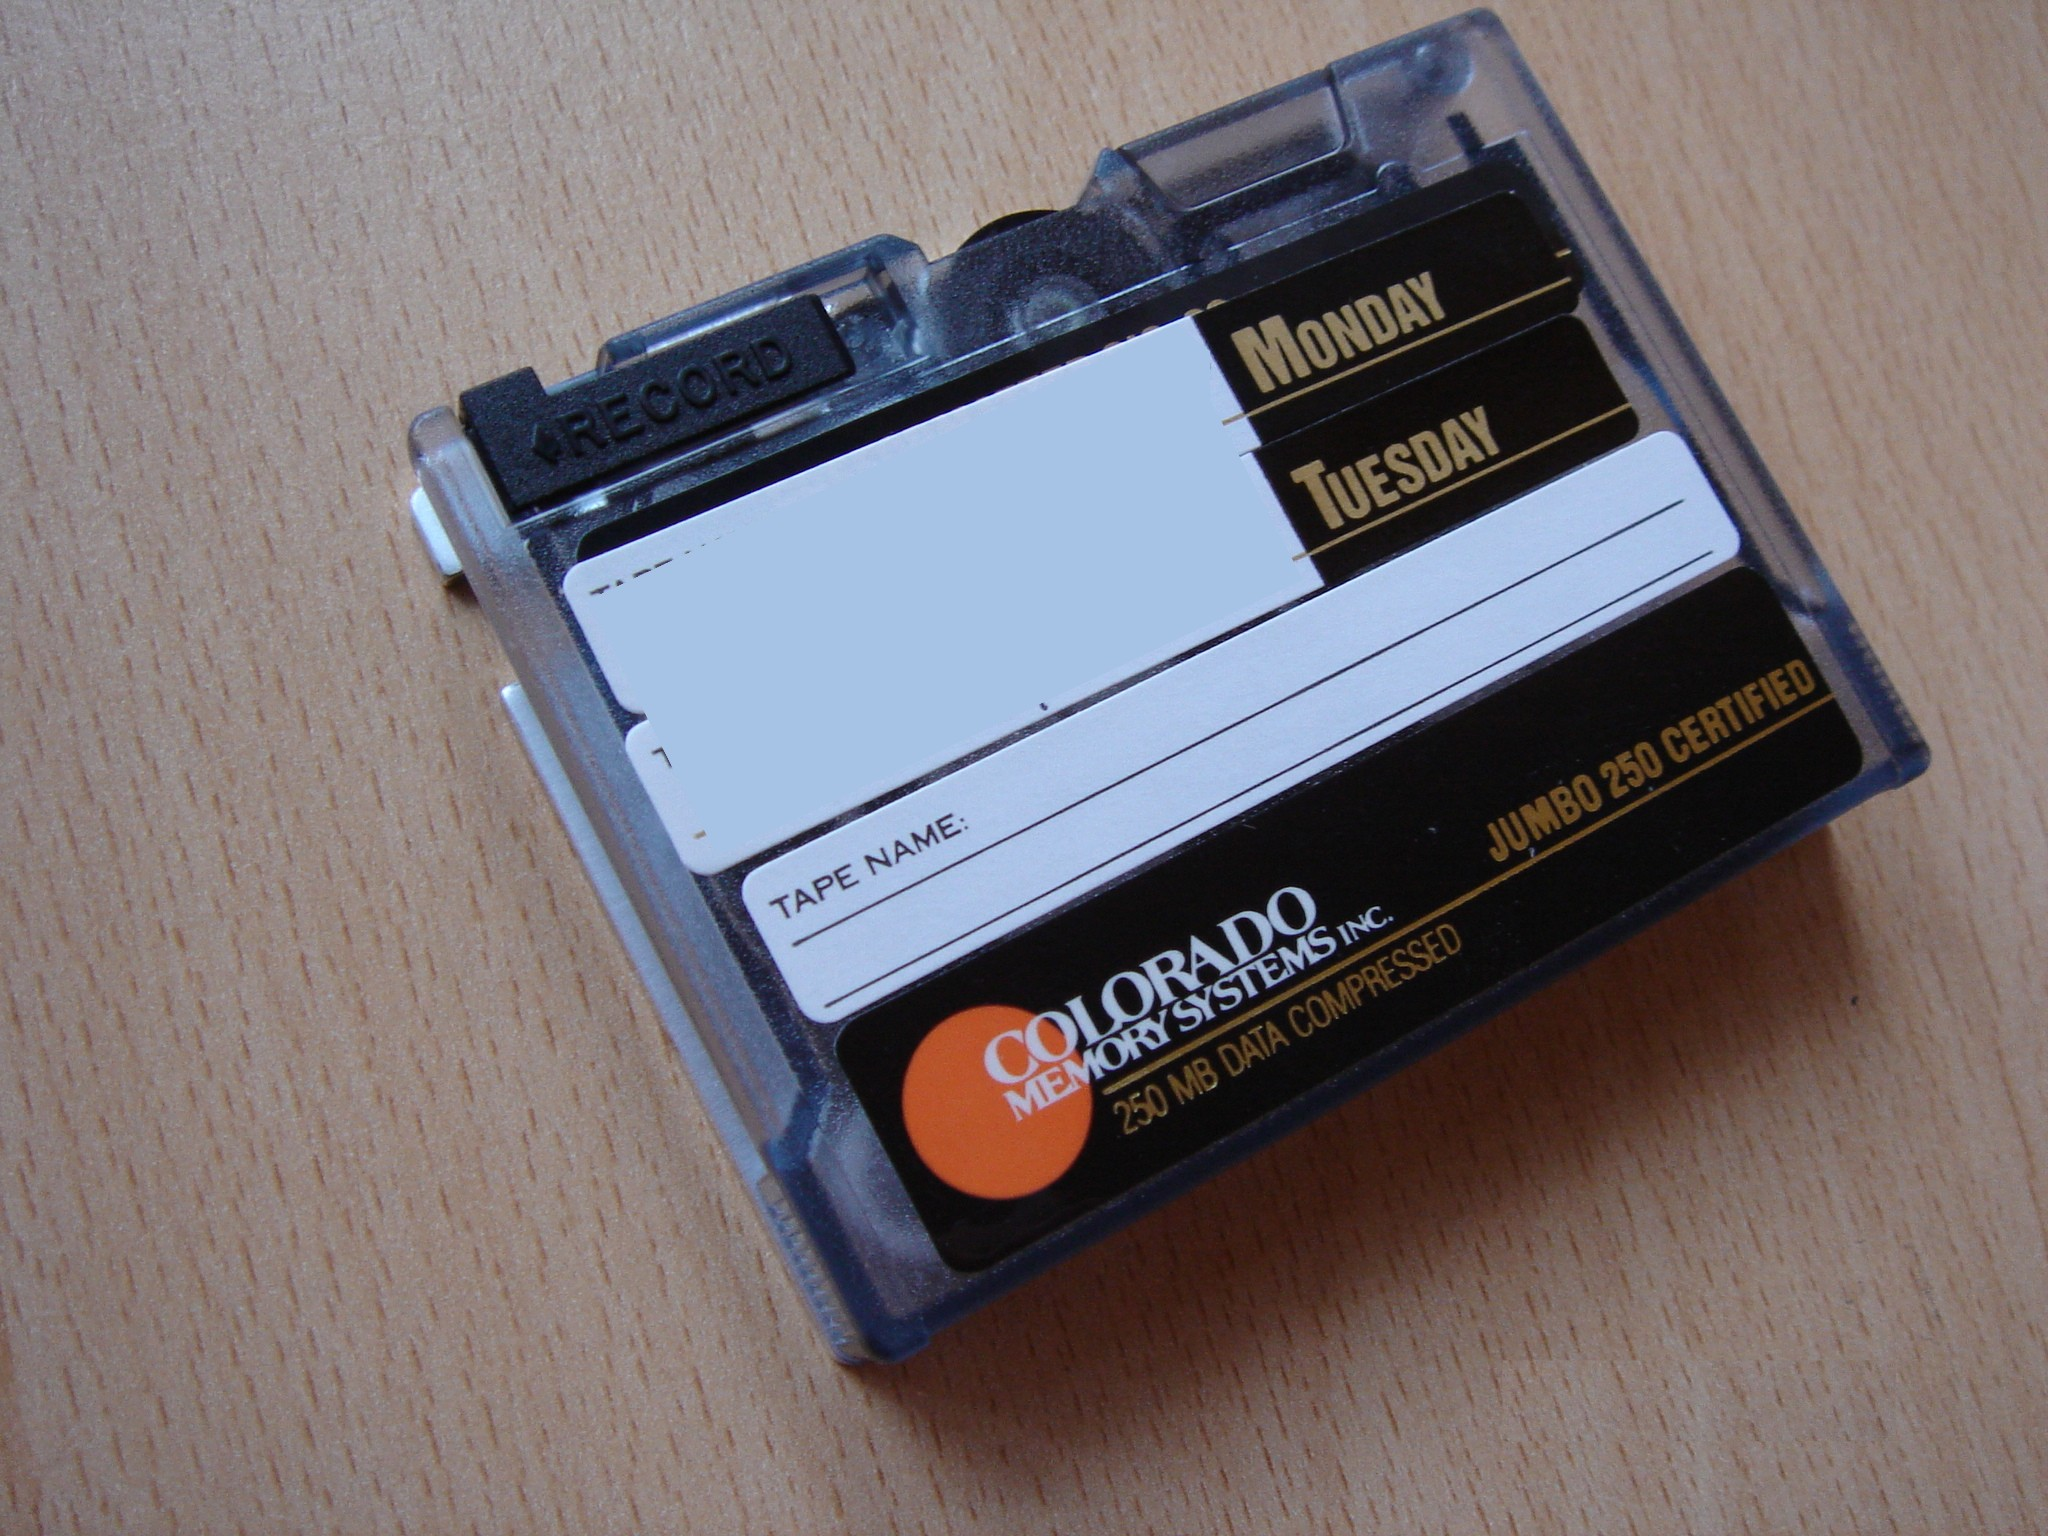 An HP Colorado backup tape that was used in Tracker Jumbo and Surestor cassette drives. These were re-badged QIC Mini-Cartridge with capacity 250mb and 680mb and can be read to USB, CD, DVD or hard drive.